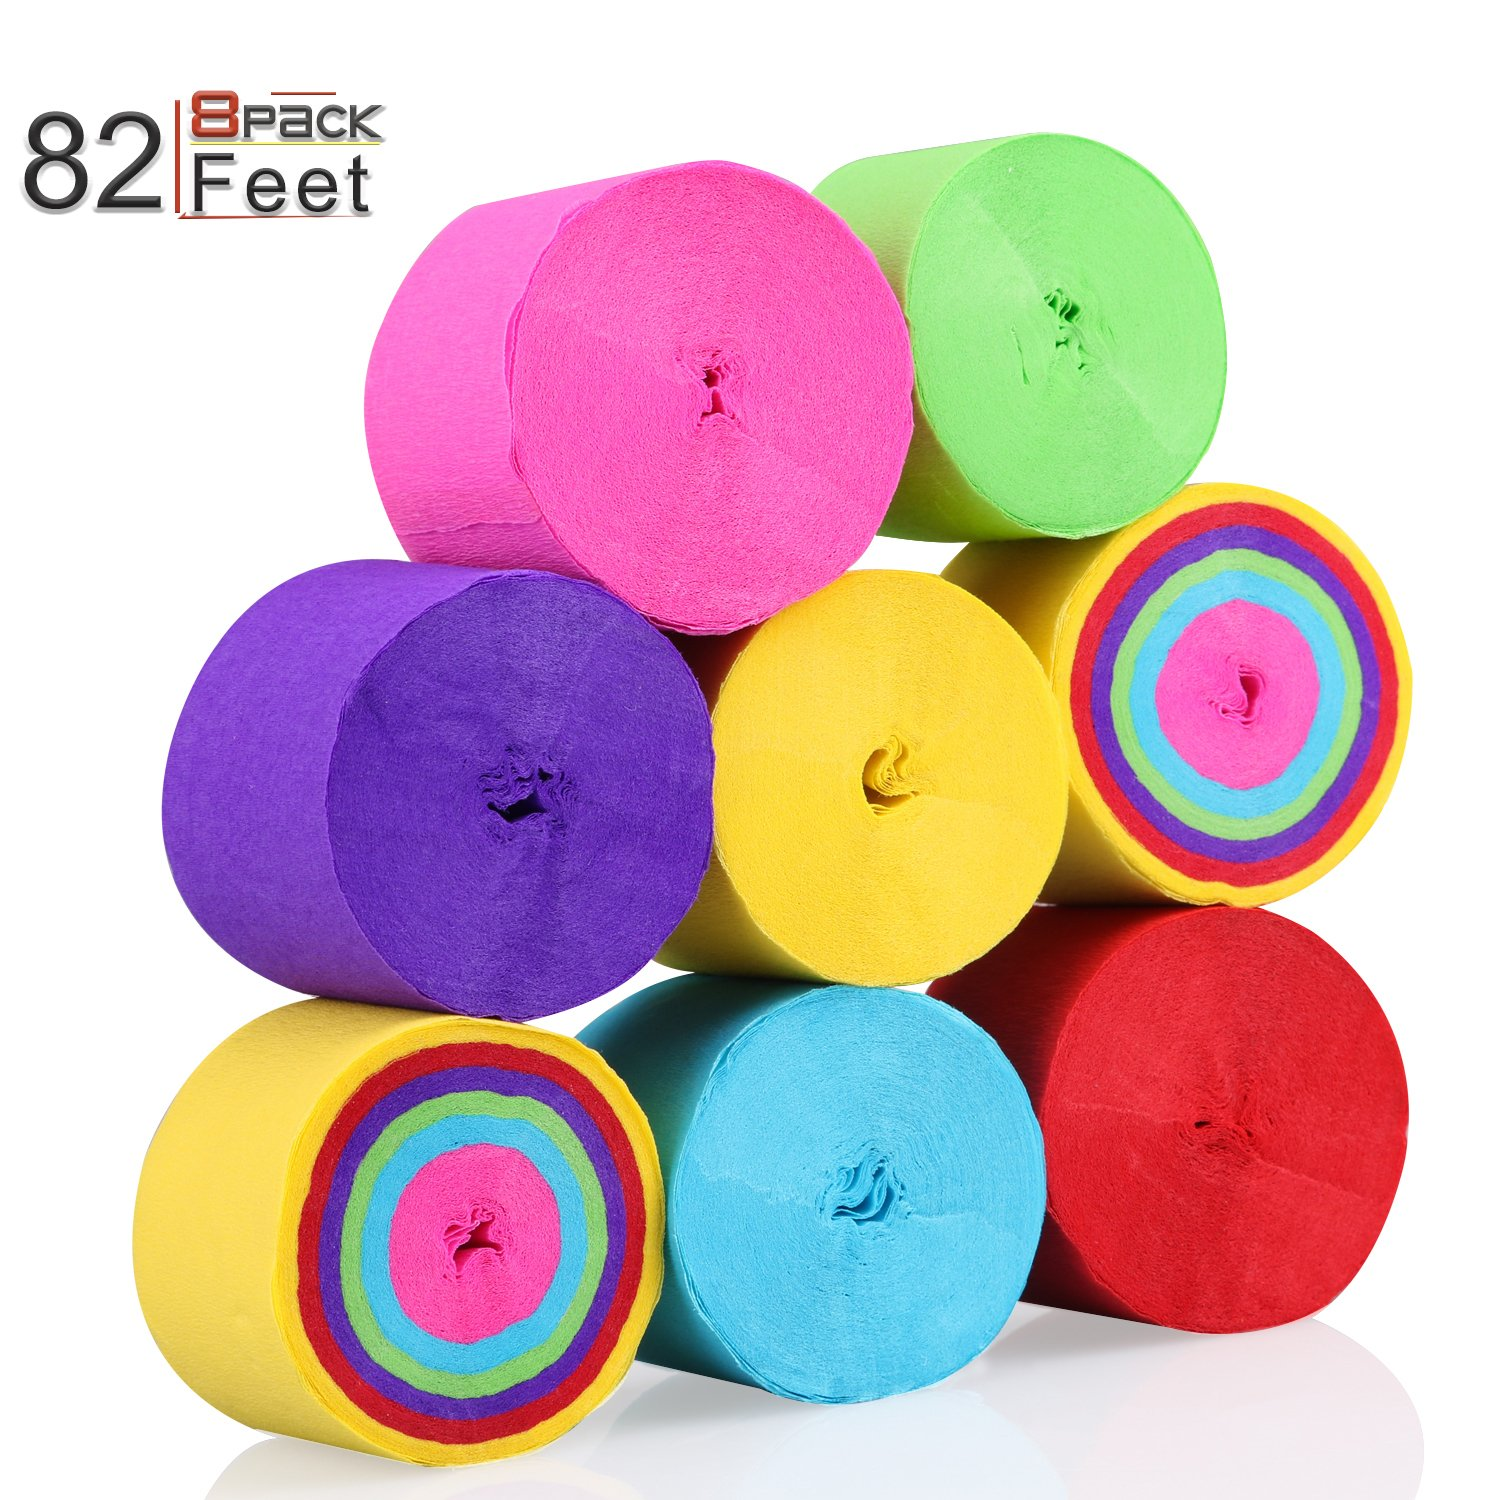 KeNeer 8 Rolls Party Streamers, Multi-color Party Decorations Crepe Paper for Birthday, Wedding, Concert and Various Festivals